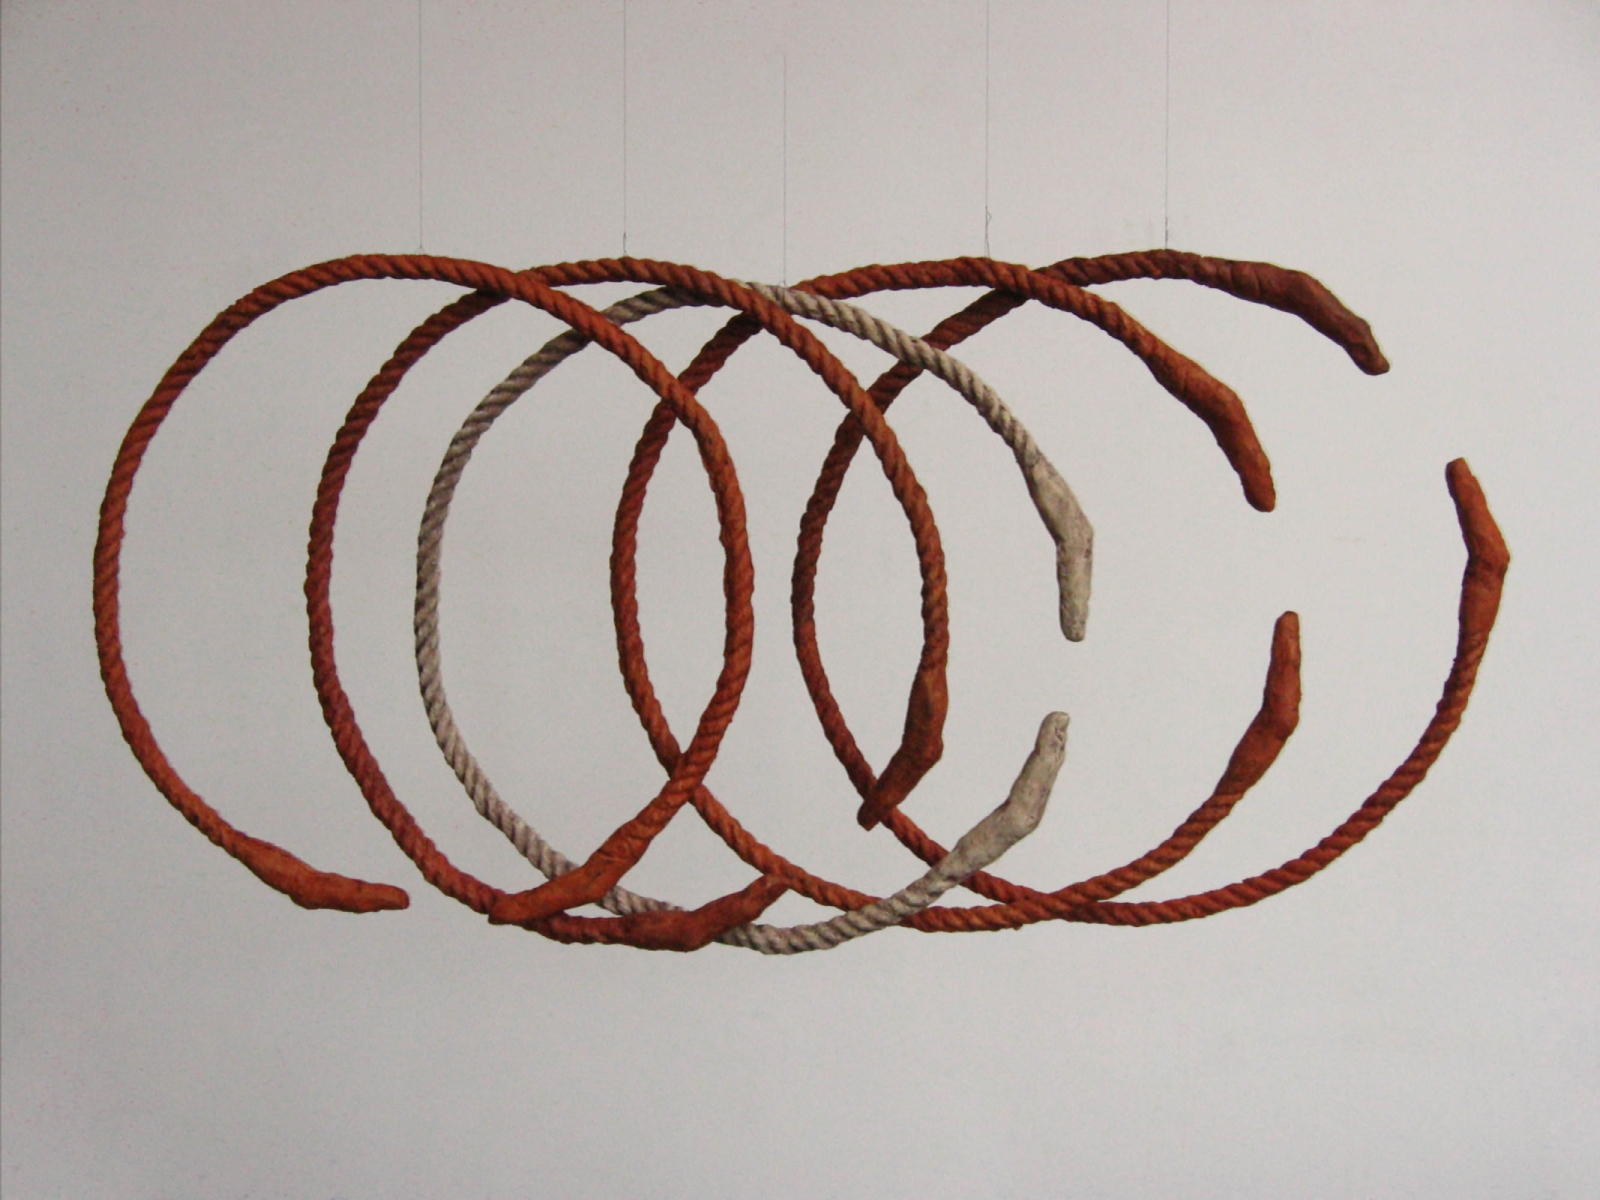 Rings, 2007, ceramic, each element 50 cm x 50 cm x 2 cm